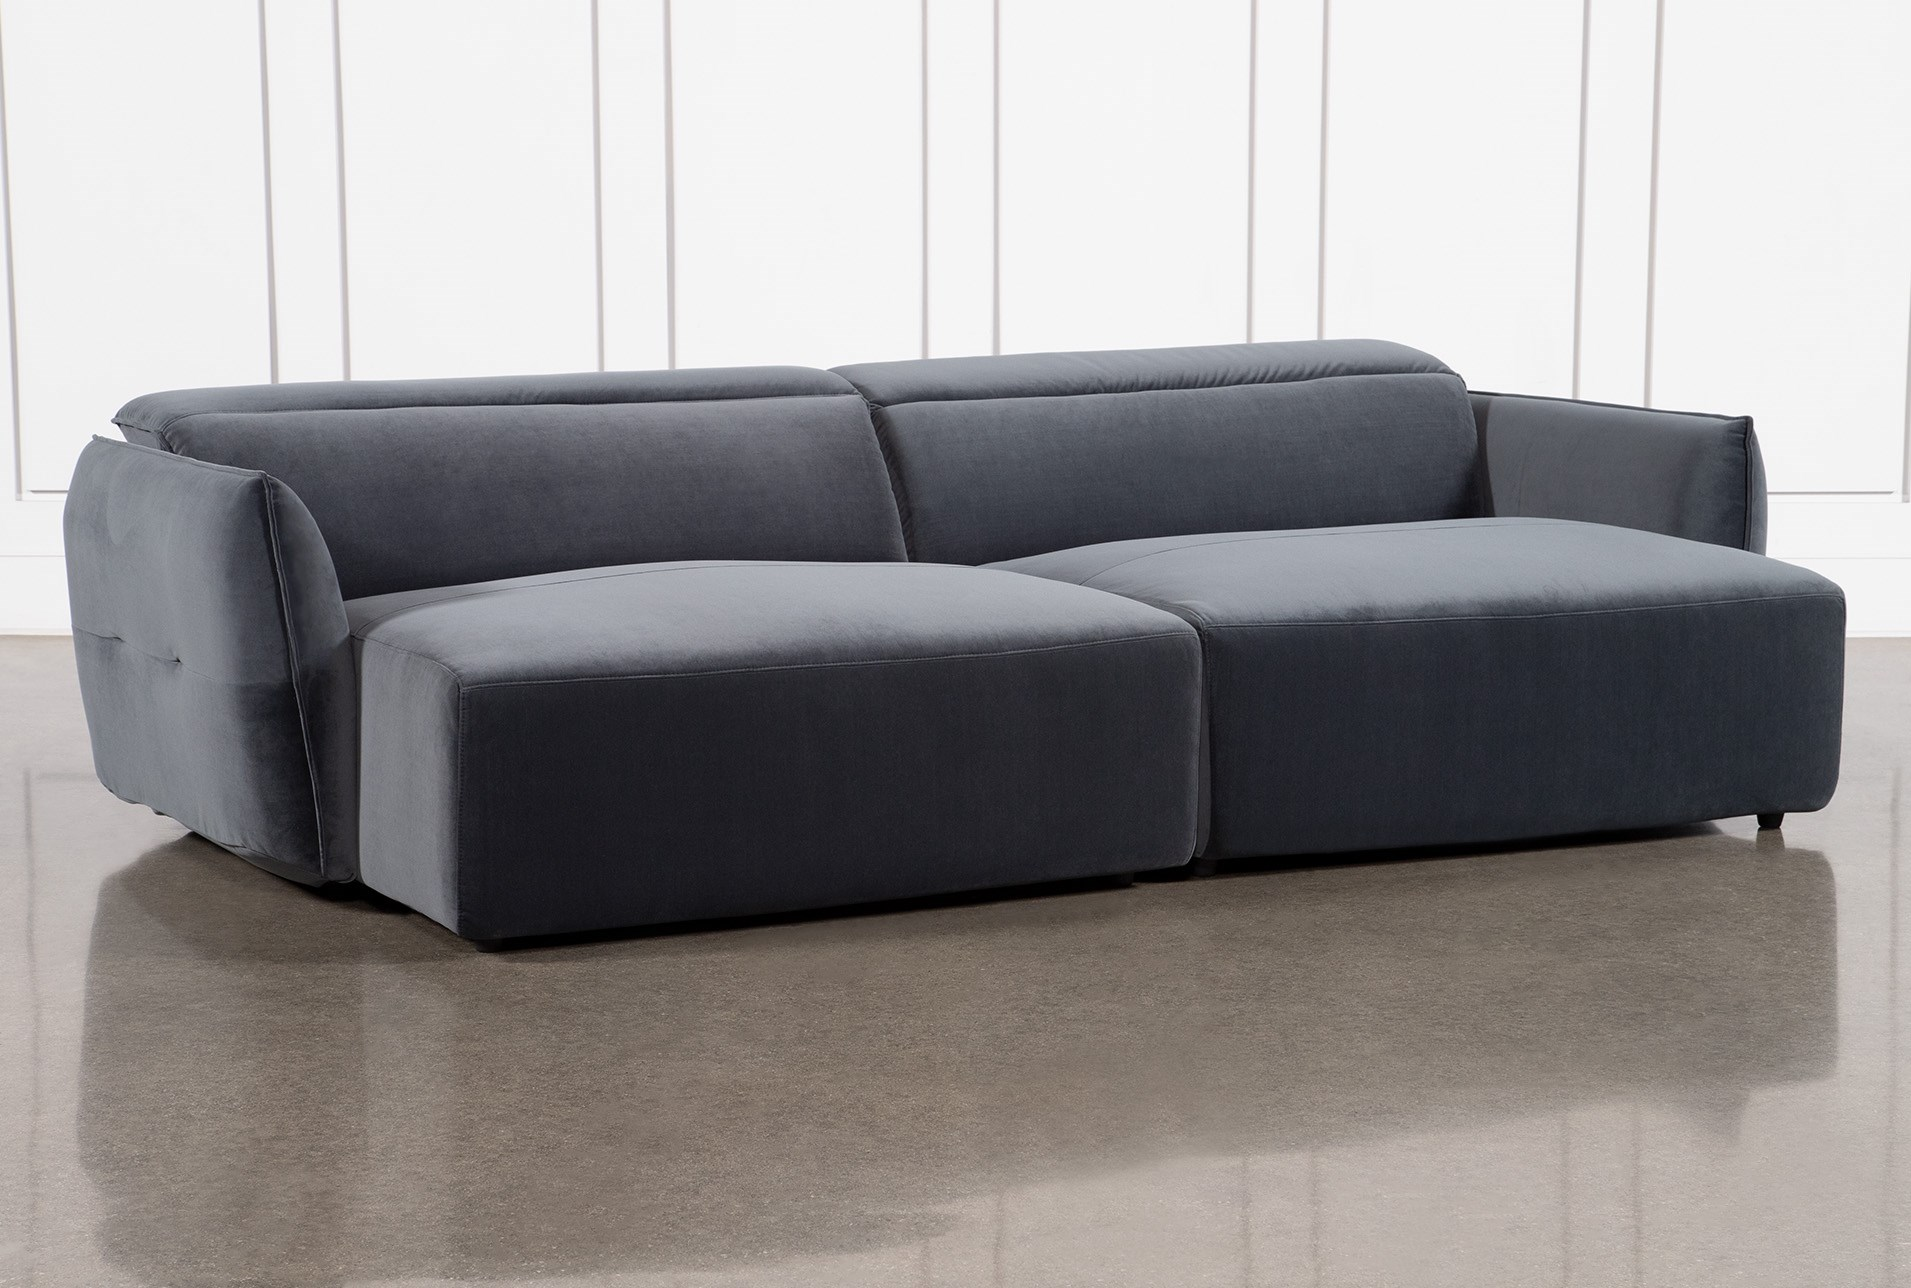 Fine Layla Midnight Dual Chaise Sectional Andrewgaddart Wooden Chair Designs For Living Room Andrewgaddartcom